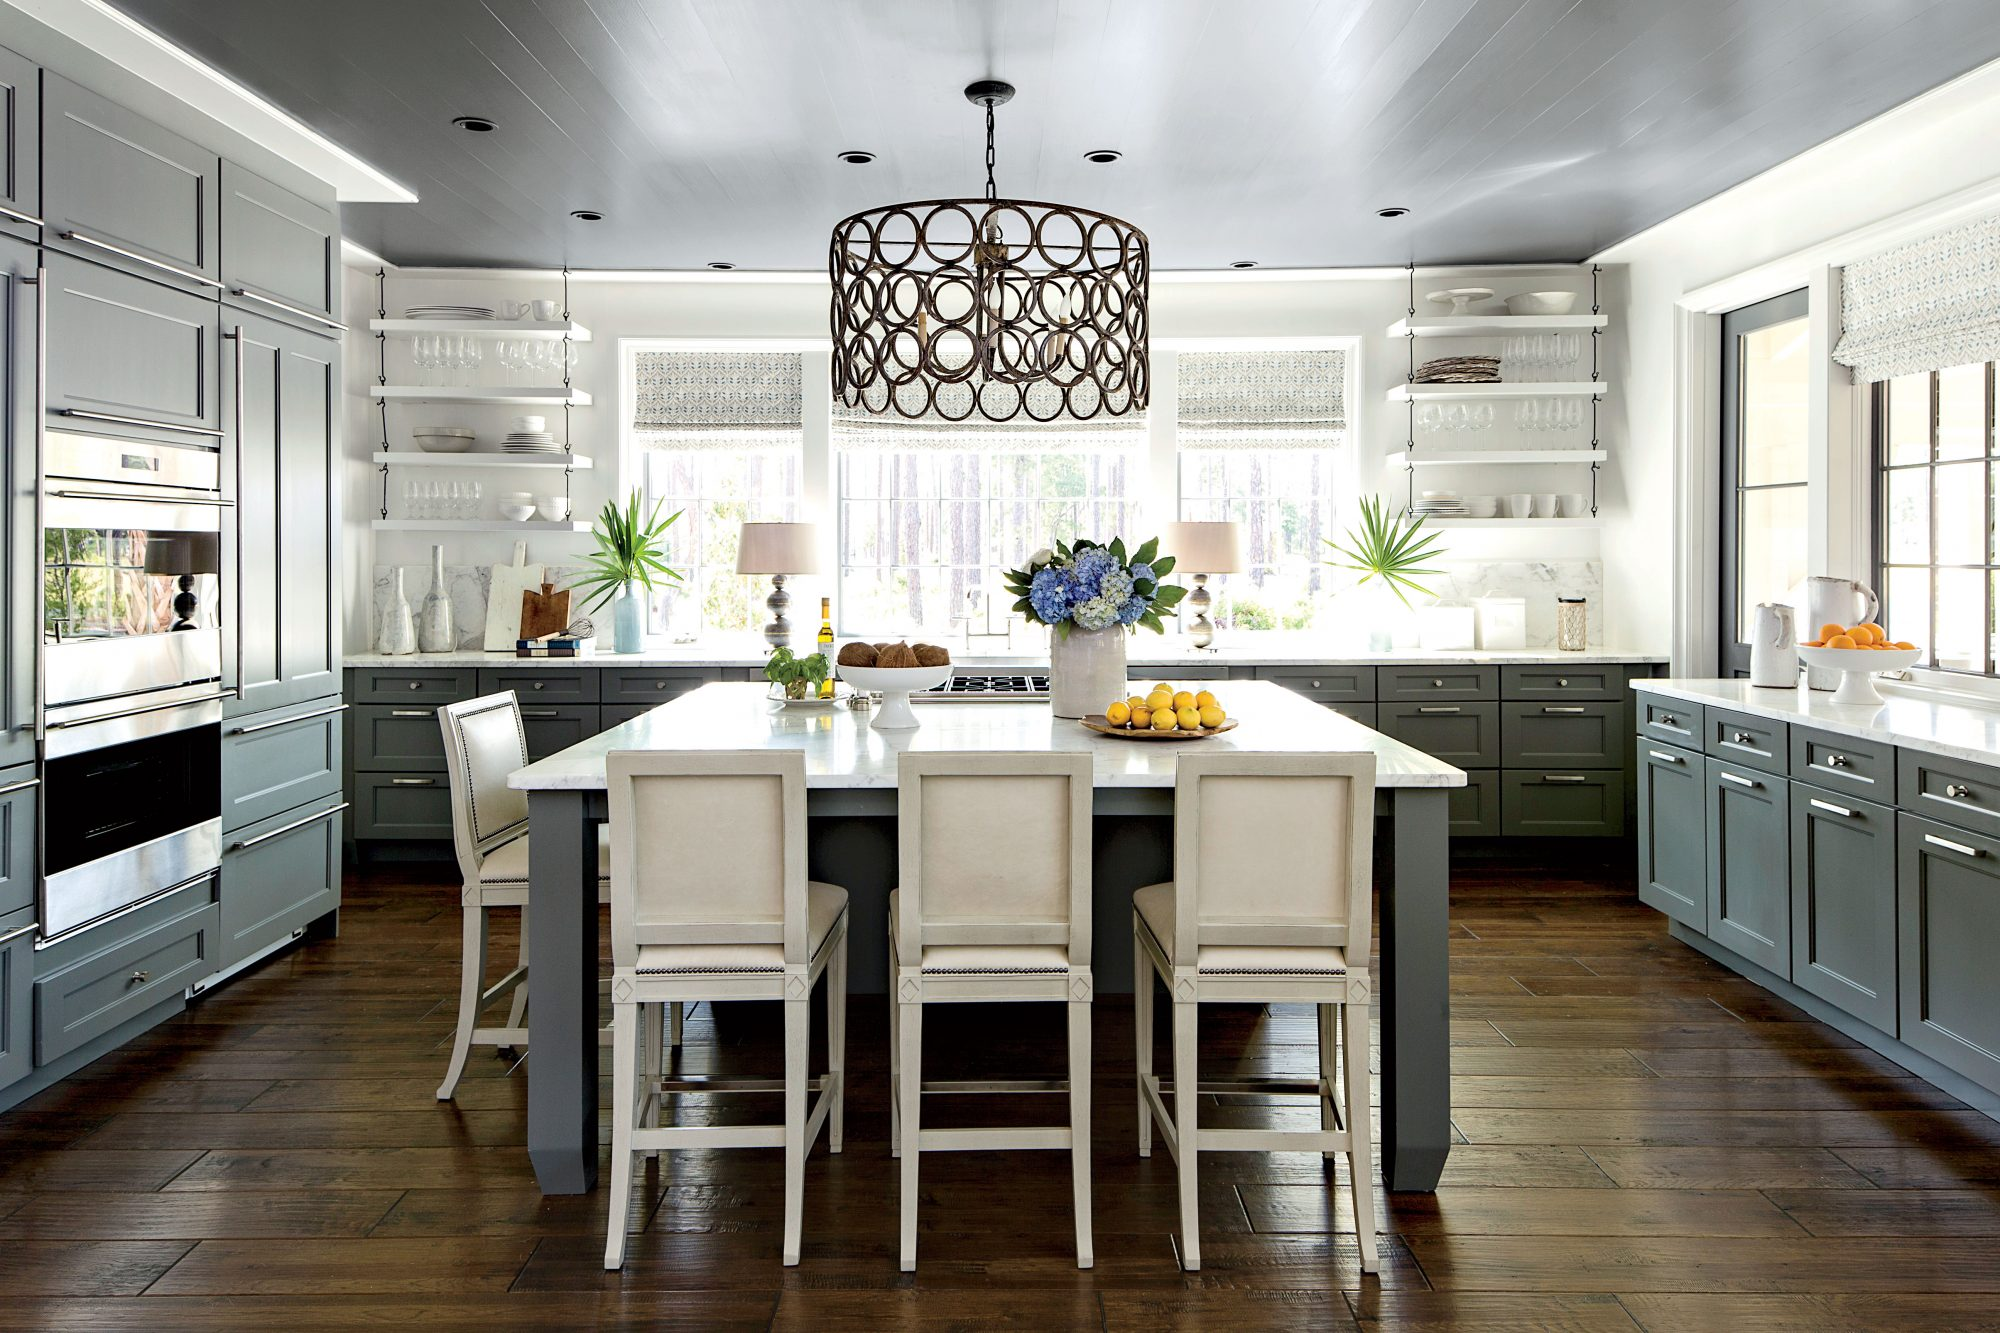 Kitchen: The Decorating